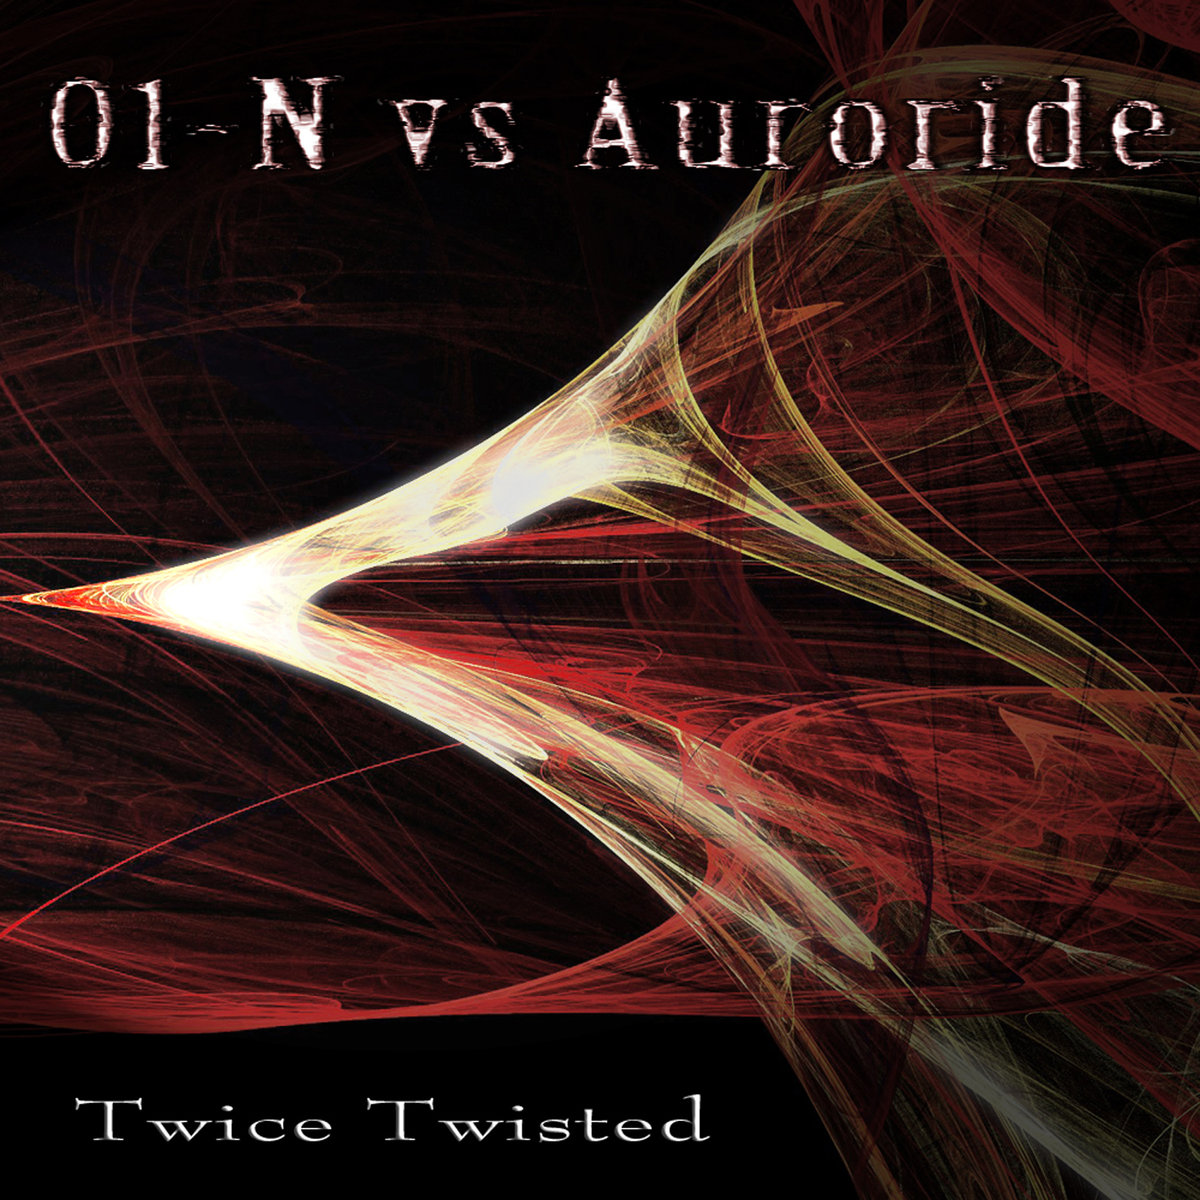 01-N vs. Auroride - Twice Twisted